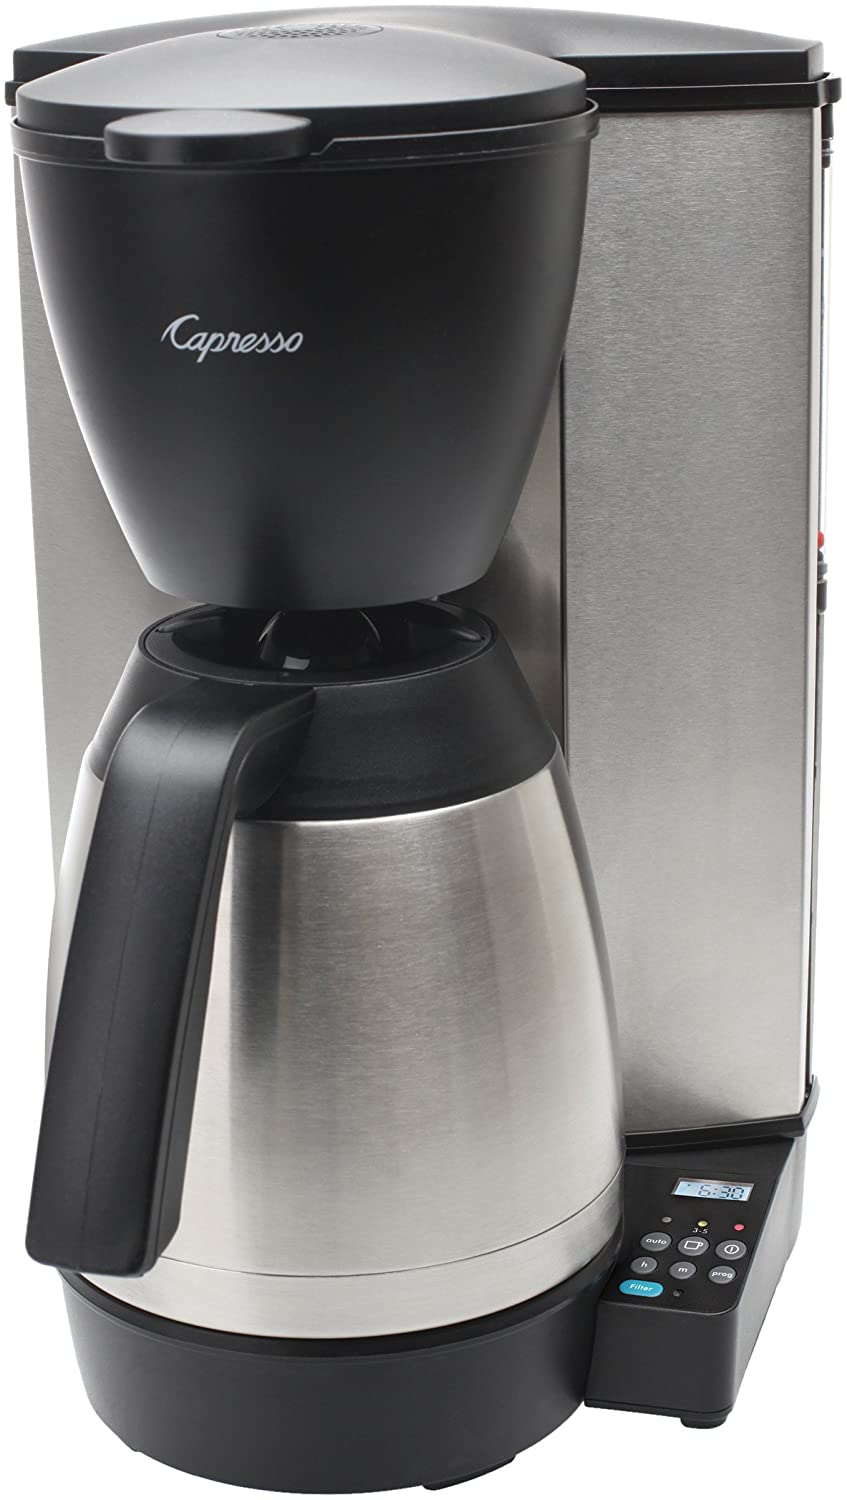 Capresso Coffee Maker 485.05: The Elegant 10 Cup Kitchen Addition